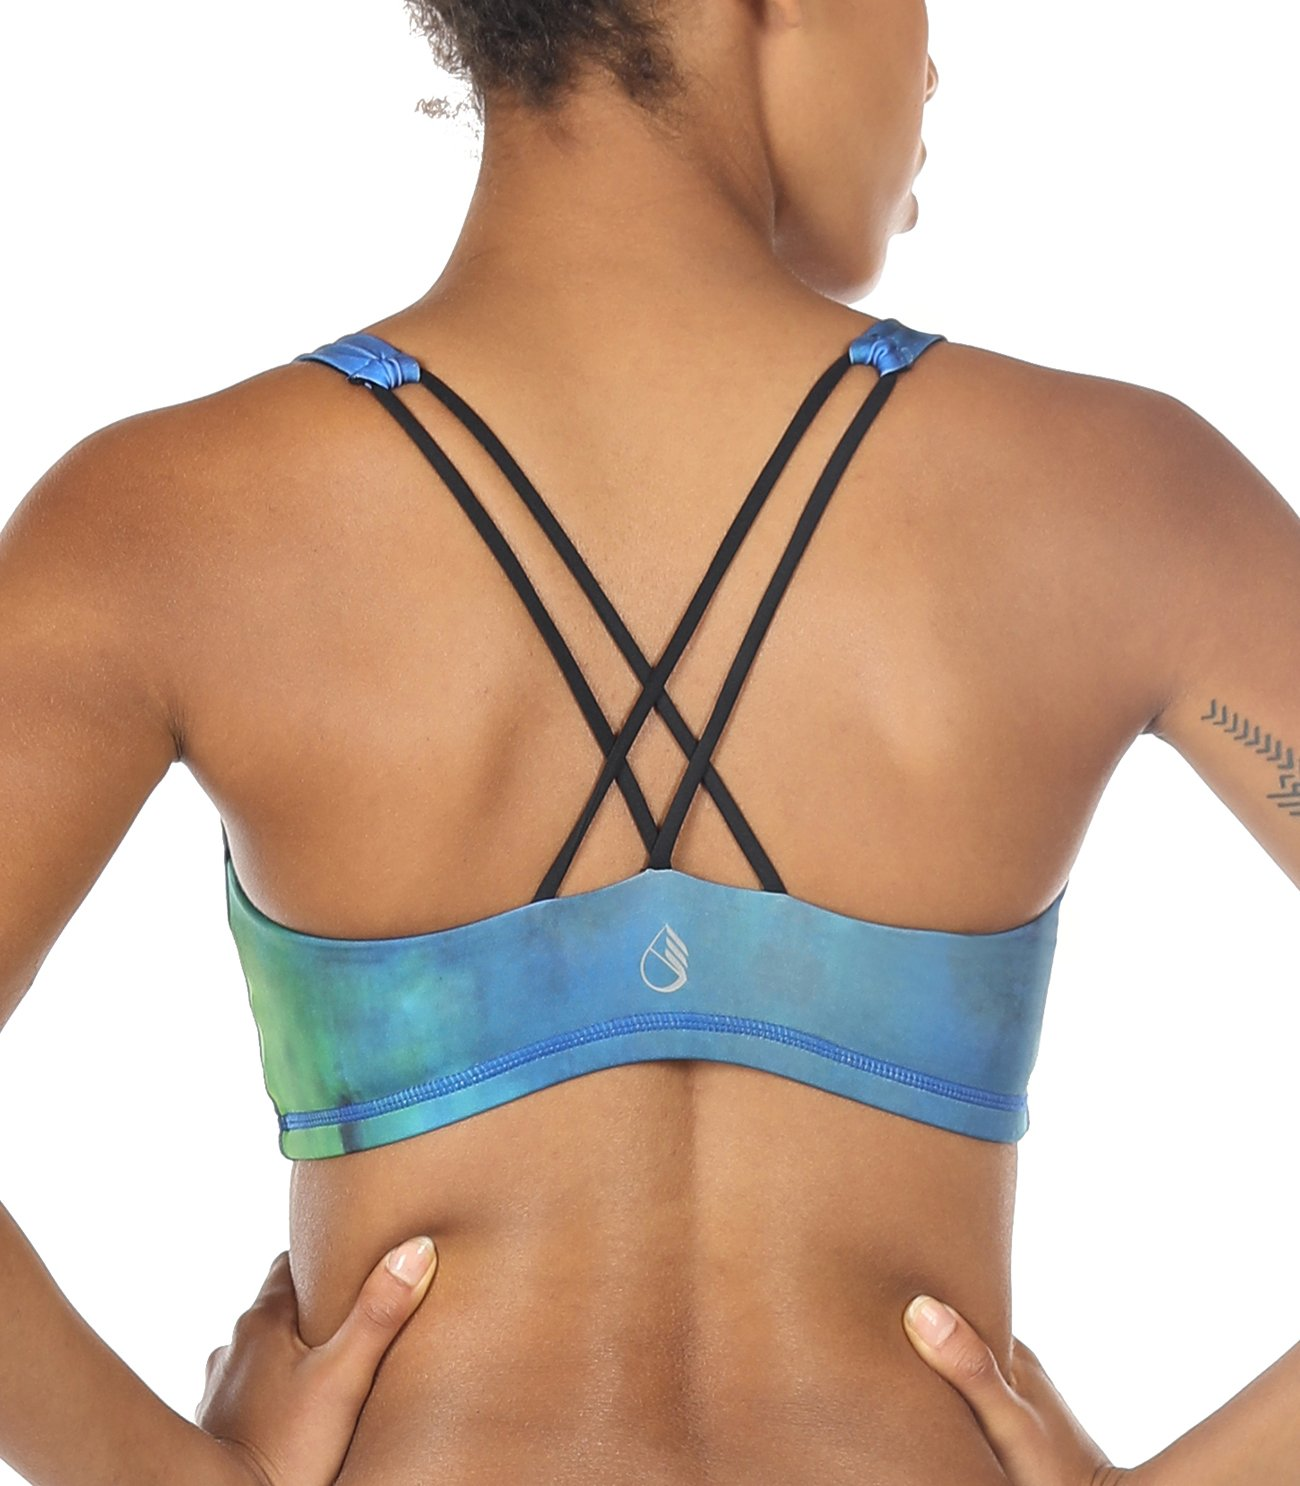 icyzone Sports Bra for Women - Women's Workout Clothes, Strappy Sports Bra, Yoga Tops, Exercise Tops (S, Aurora)